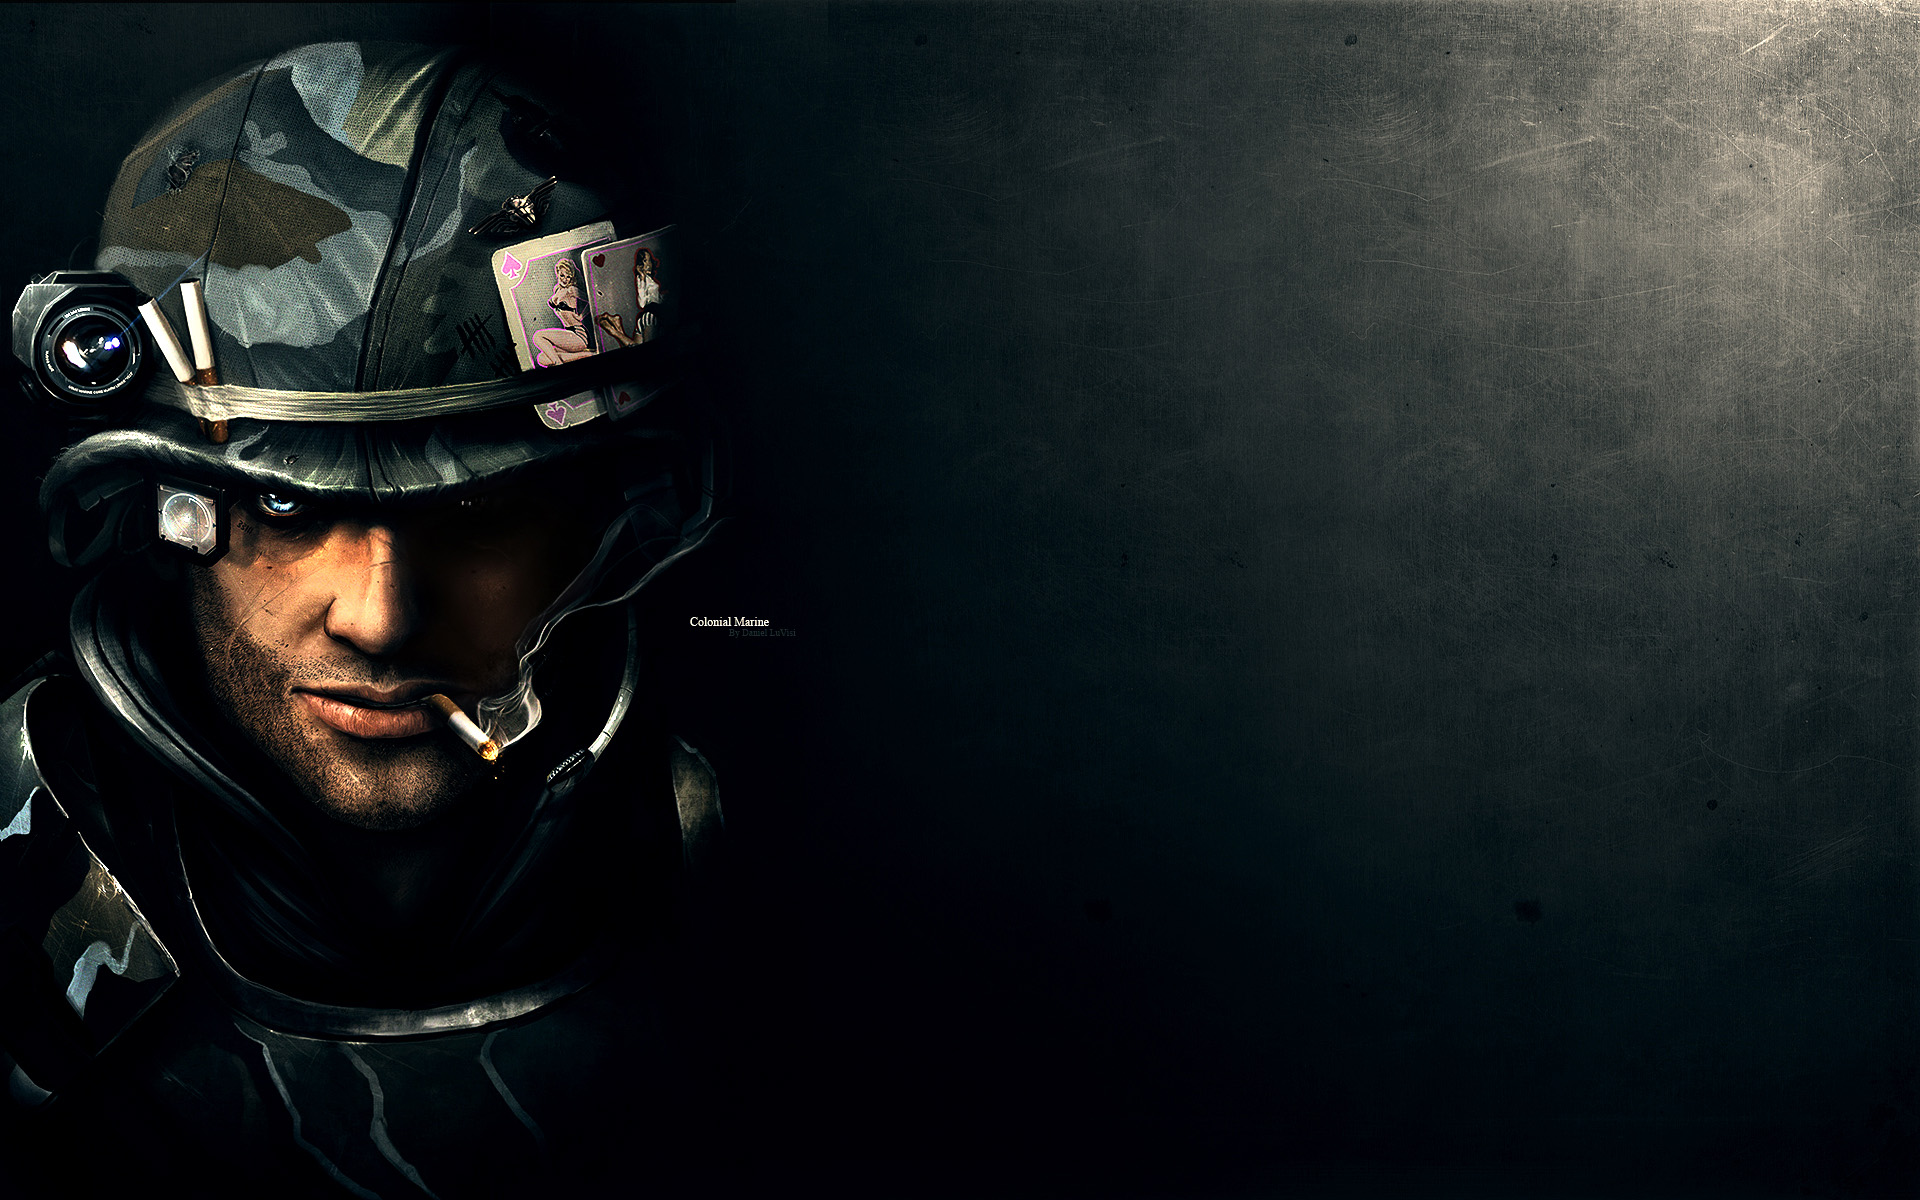 portrait-of-a-soldier-wallpapers_10181_1920x1200.jpg